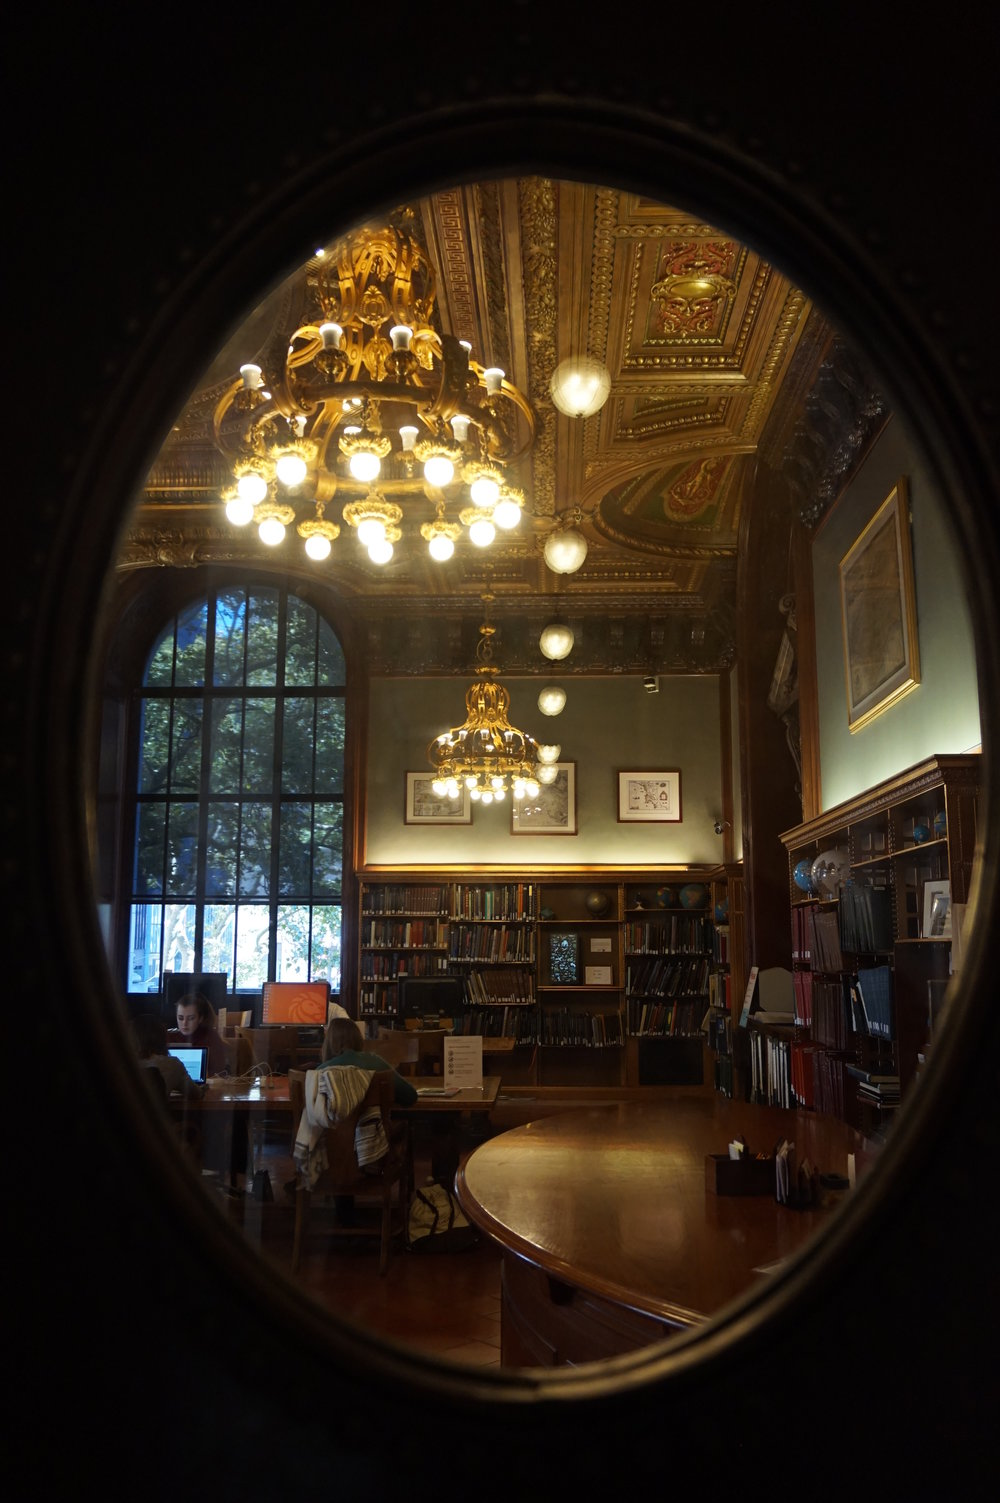 USA-New-York-Public-Library.jpg